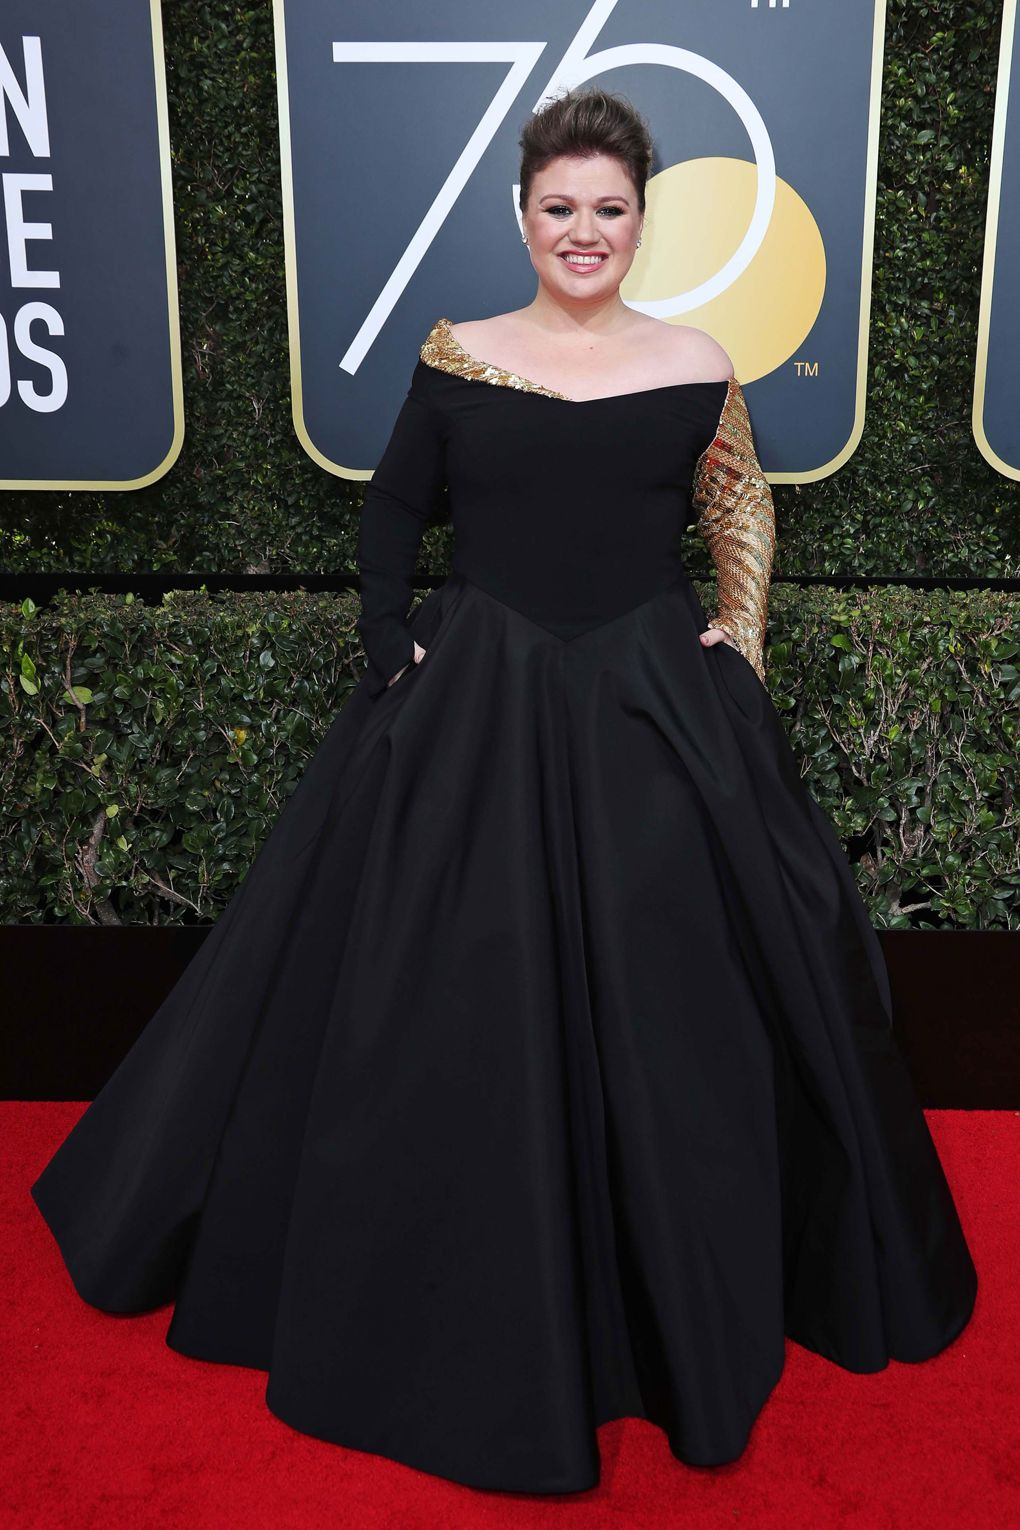 golden globes 2019 - photo #41